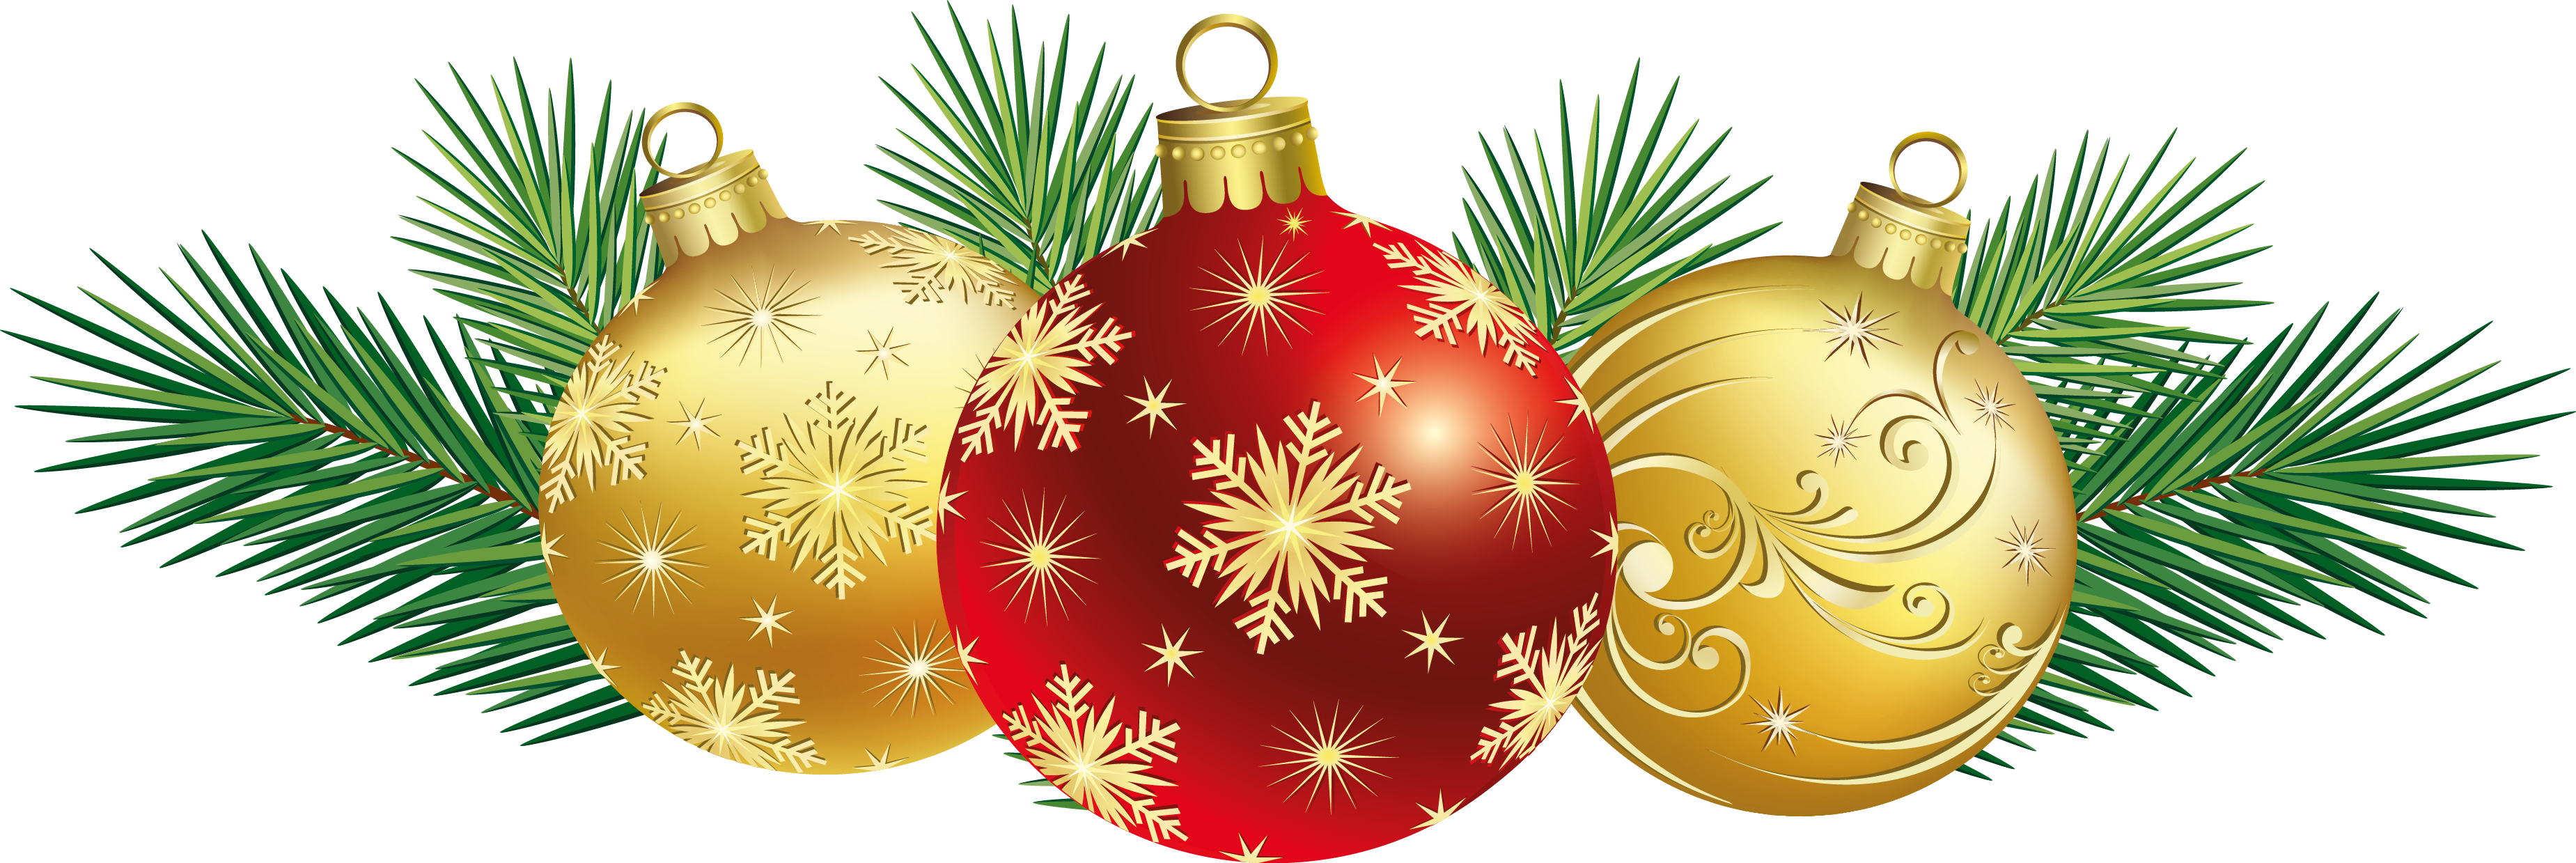 Christmas Tree clipart decorative Simple At Design Ornaments